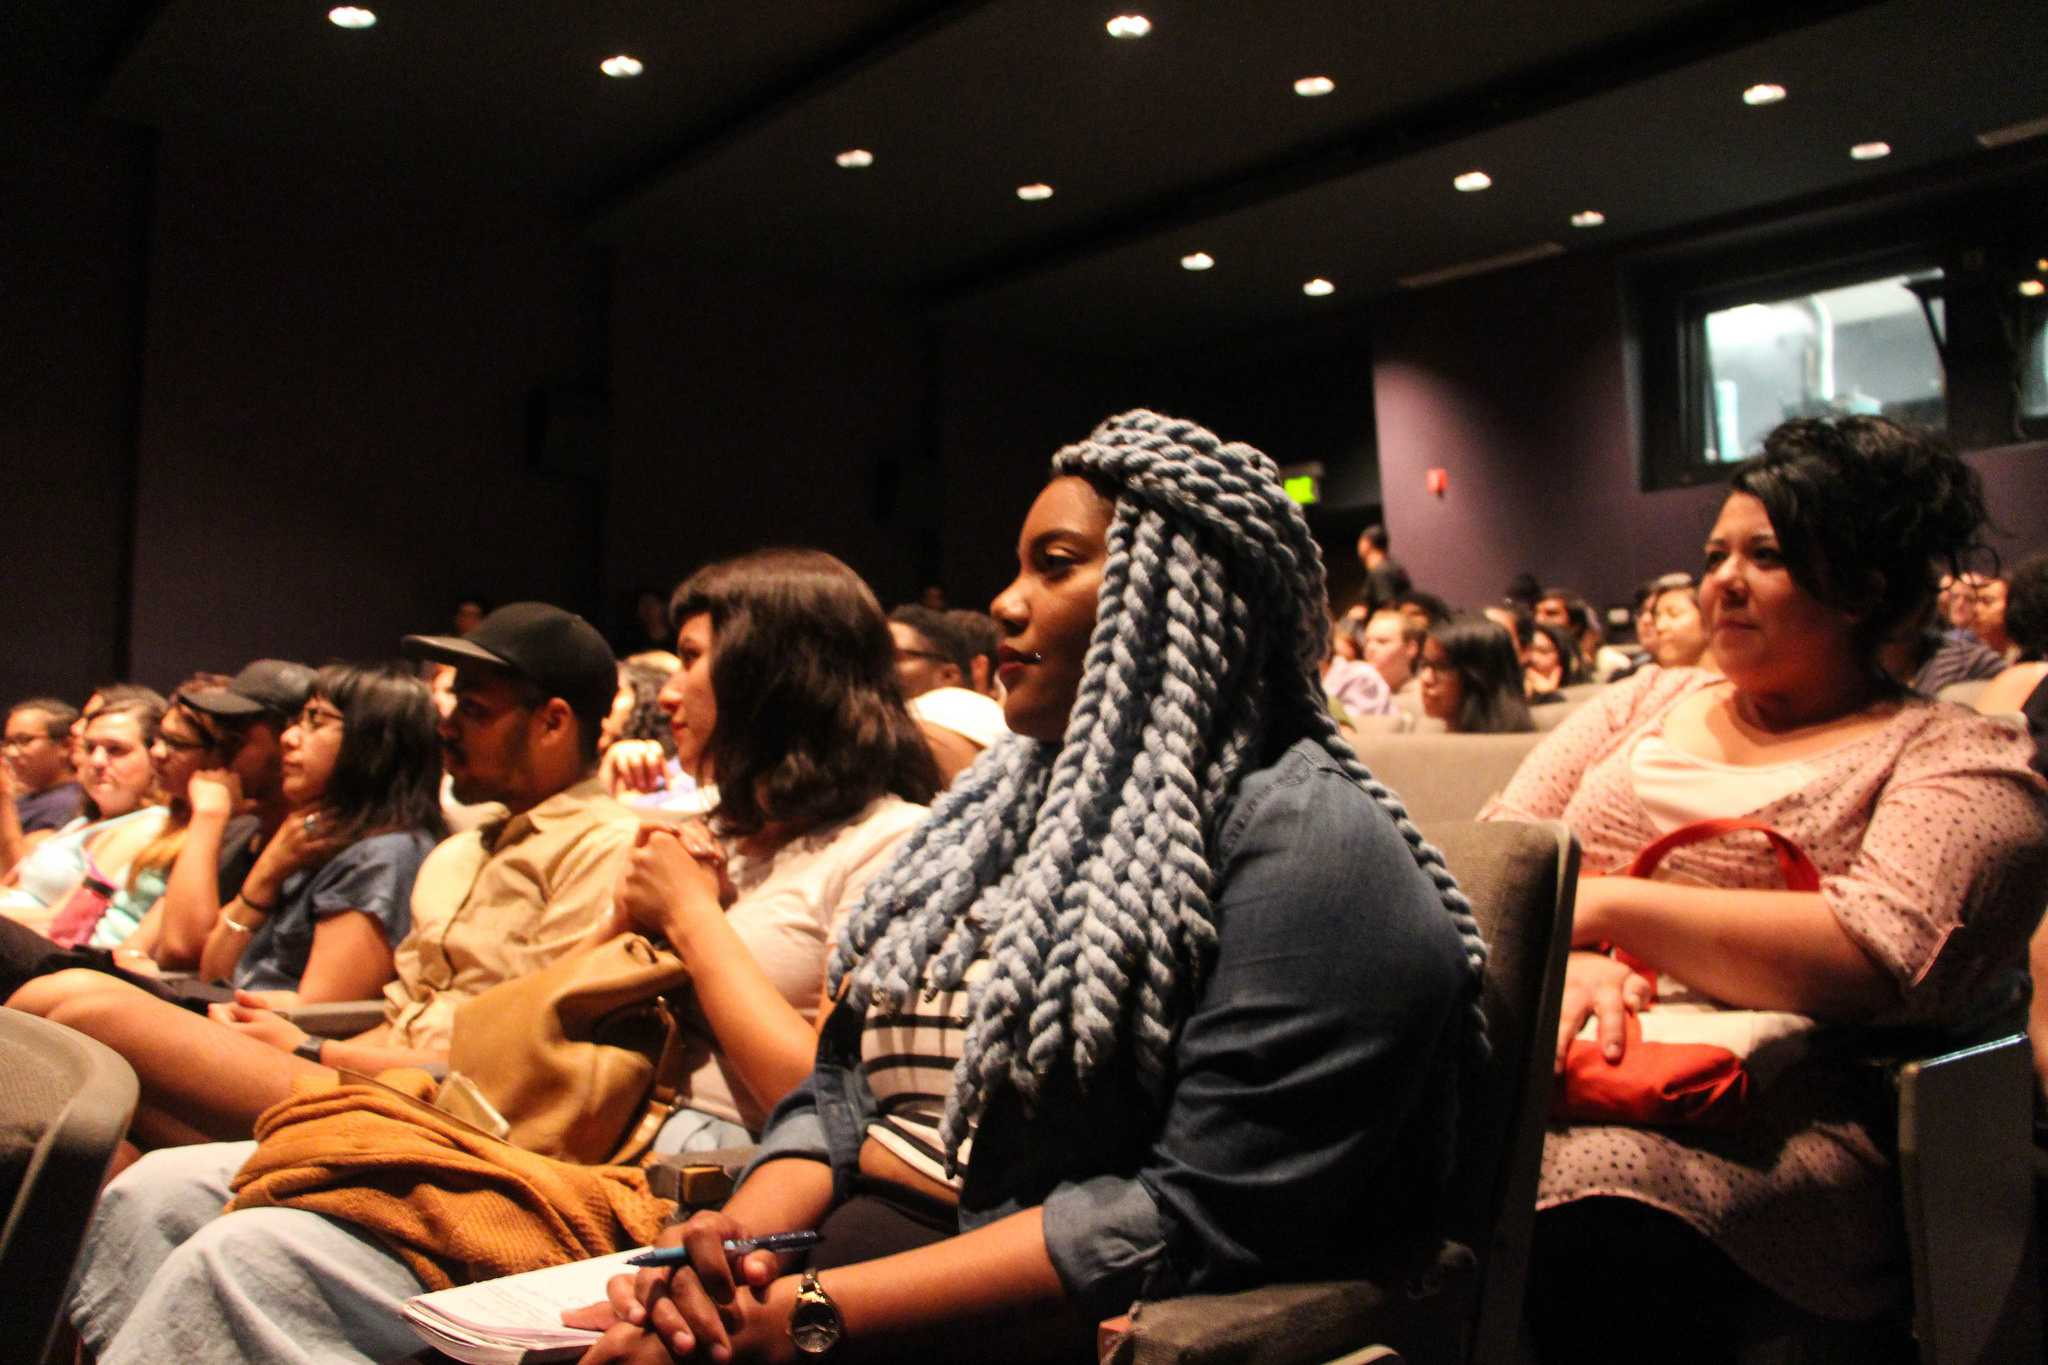 Lexus Killingsworth listens to Black Lives Matter co-creator Alicia Garza speak during a discussion about queer and trans communities in San Francisco, at Coppola Hall Thursday, Sept. 10, 2015. (Xpress/Alex Kofman)